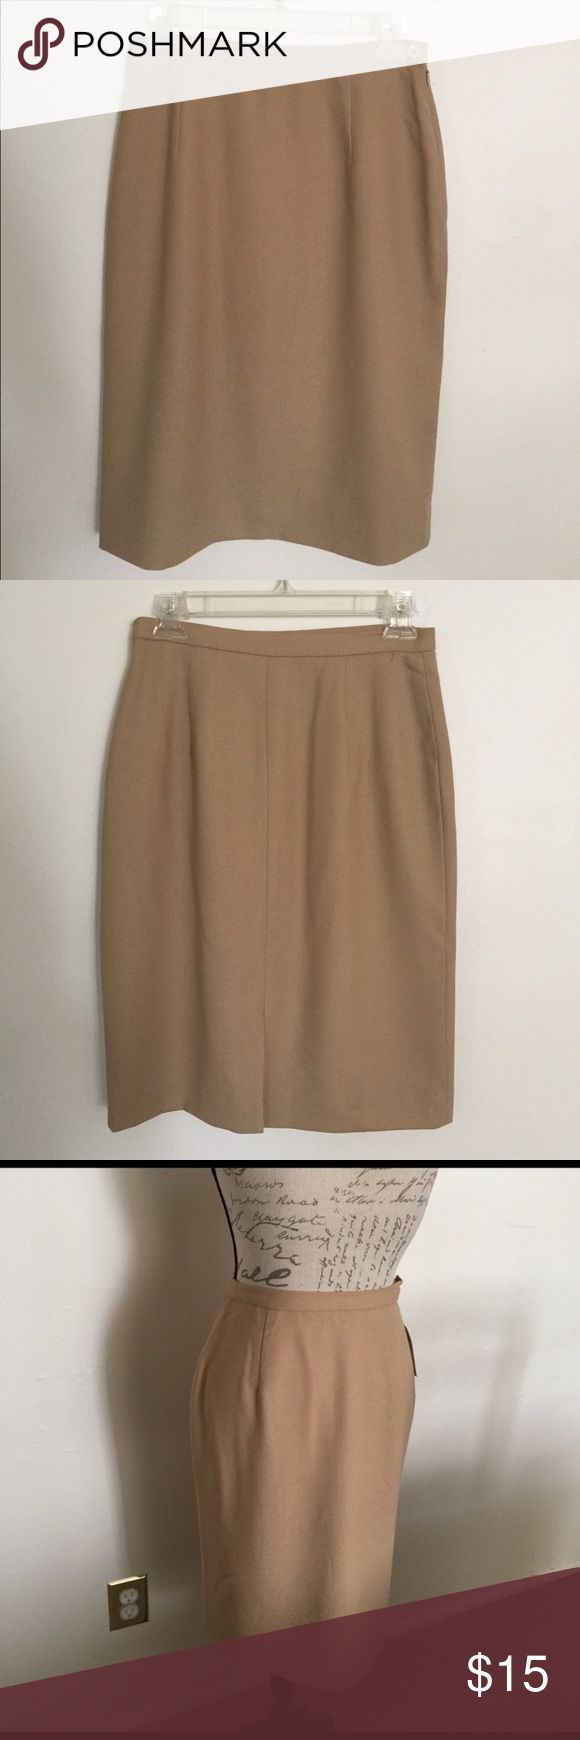 """Tan Pencil Skirt by Rena Rowan Pencil Skirt by Rena Rowan. Size 6, Side zip with button closure. Back Slit. Fully lined, 100% Wool 100% Acetate lining. Great condition. No tags. Dry clean. Approximate measurements 29"""". Waist 24"""" Length Rena Rowan Skirts Pencil"""